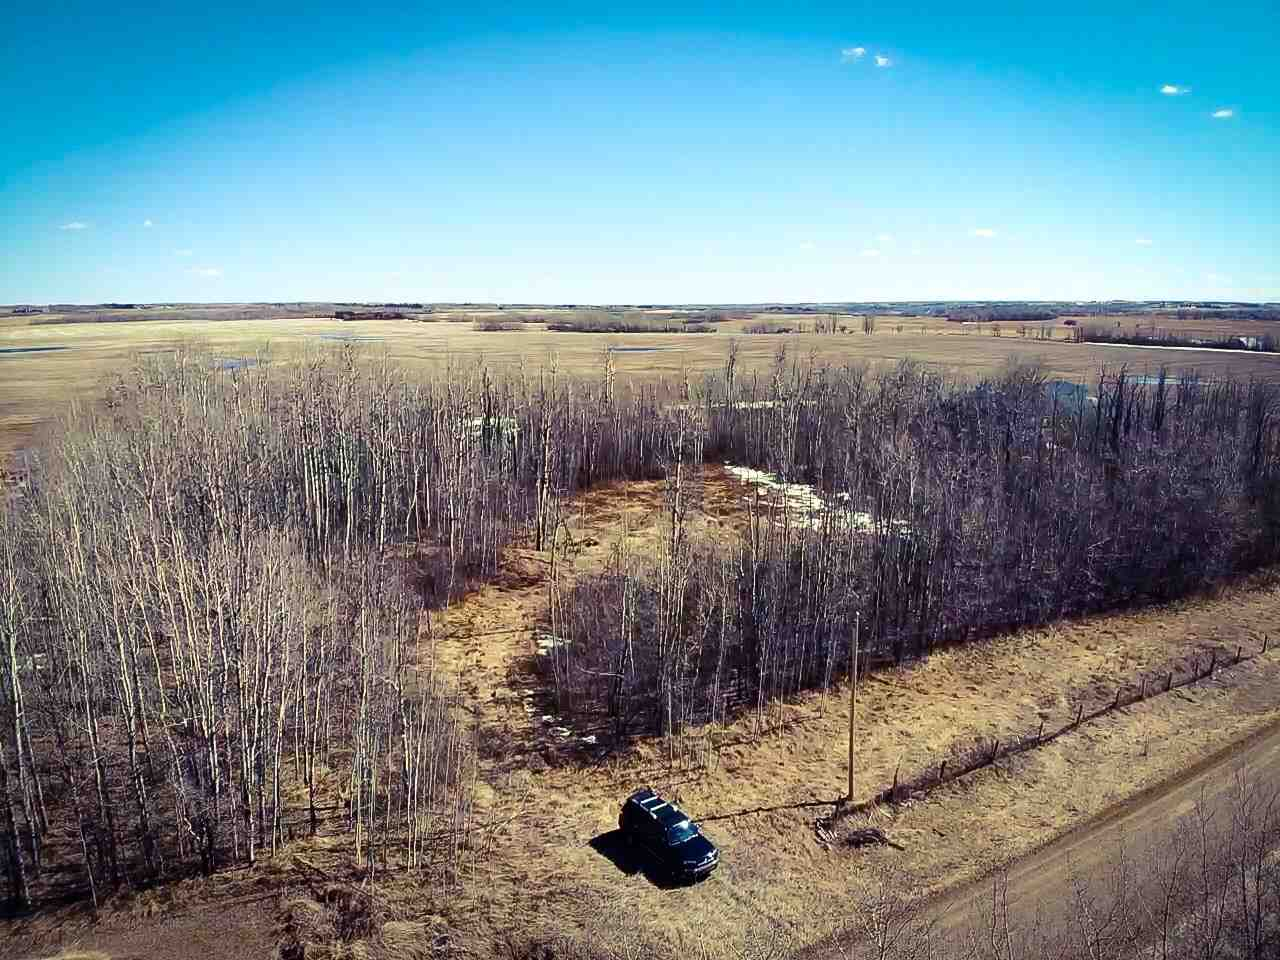 The perfect opportunity to stop dreaming and start building your dream home is right here! This property is located 5 min south of Beaumont and 20min to South Edmonton on paved roads.  2.47 acres in Leduc County that's not in a subdivision. The property is fully treed and a road and build site have been cleared with lots of options for you to layout your plans.